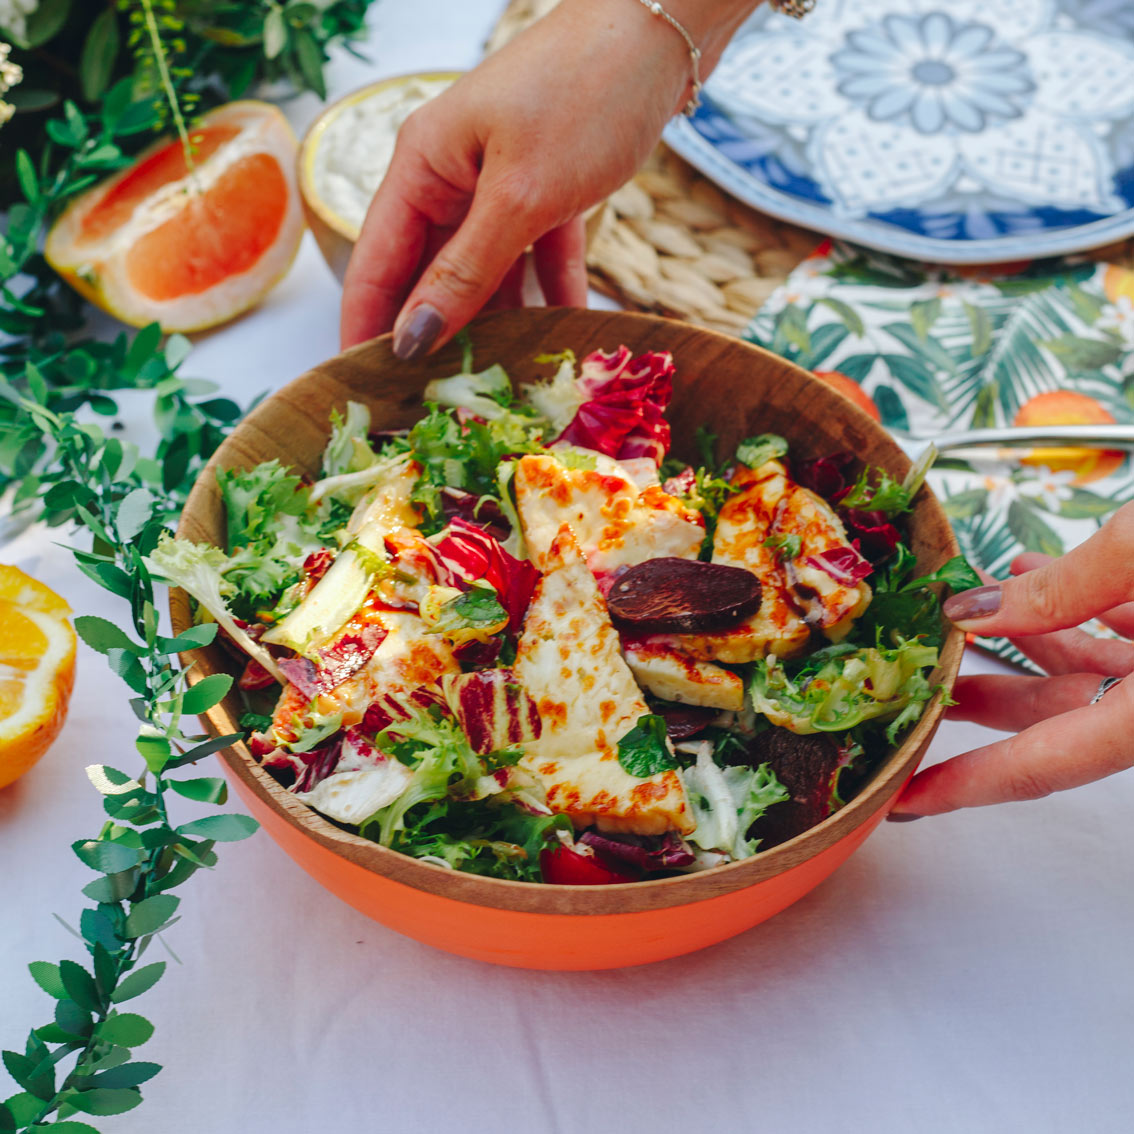 Sarah's Mediterranean Inspired Table with Indian Mango Wood Bowls and Orange Painted Outside with Leafy Salad - Talking Tables UK